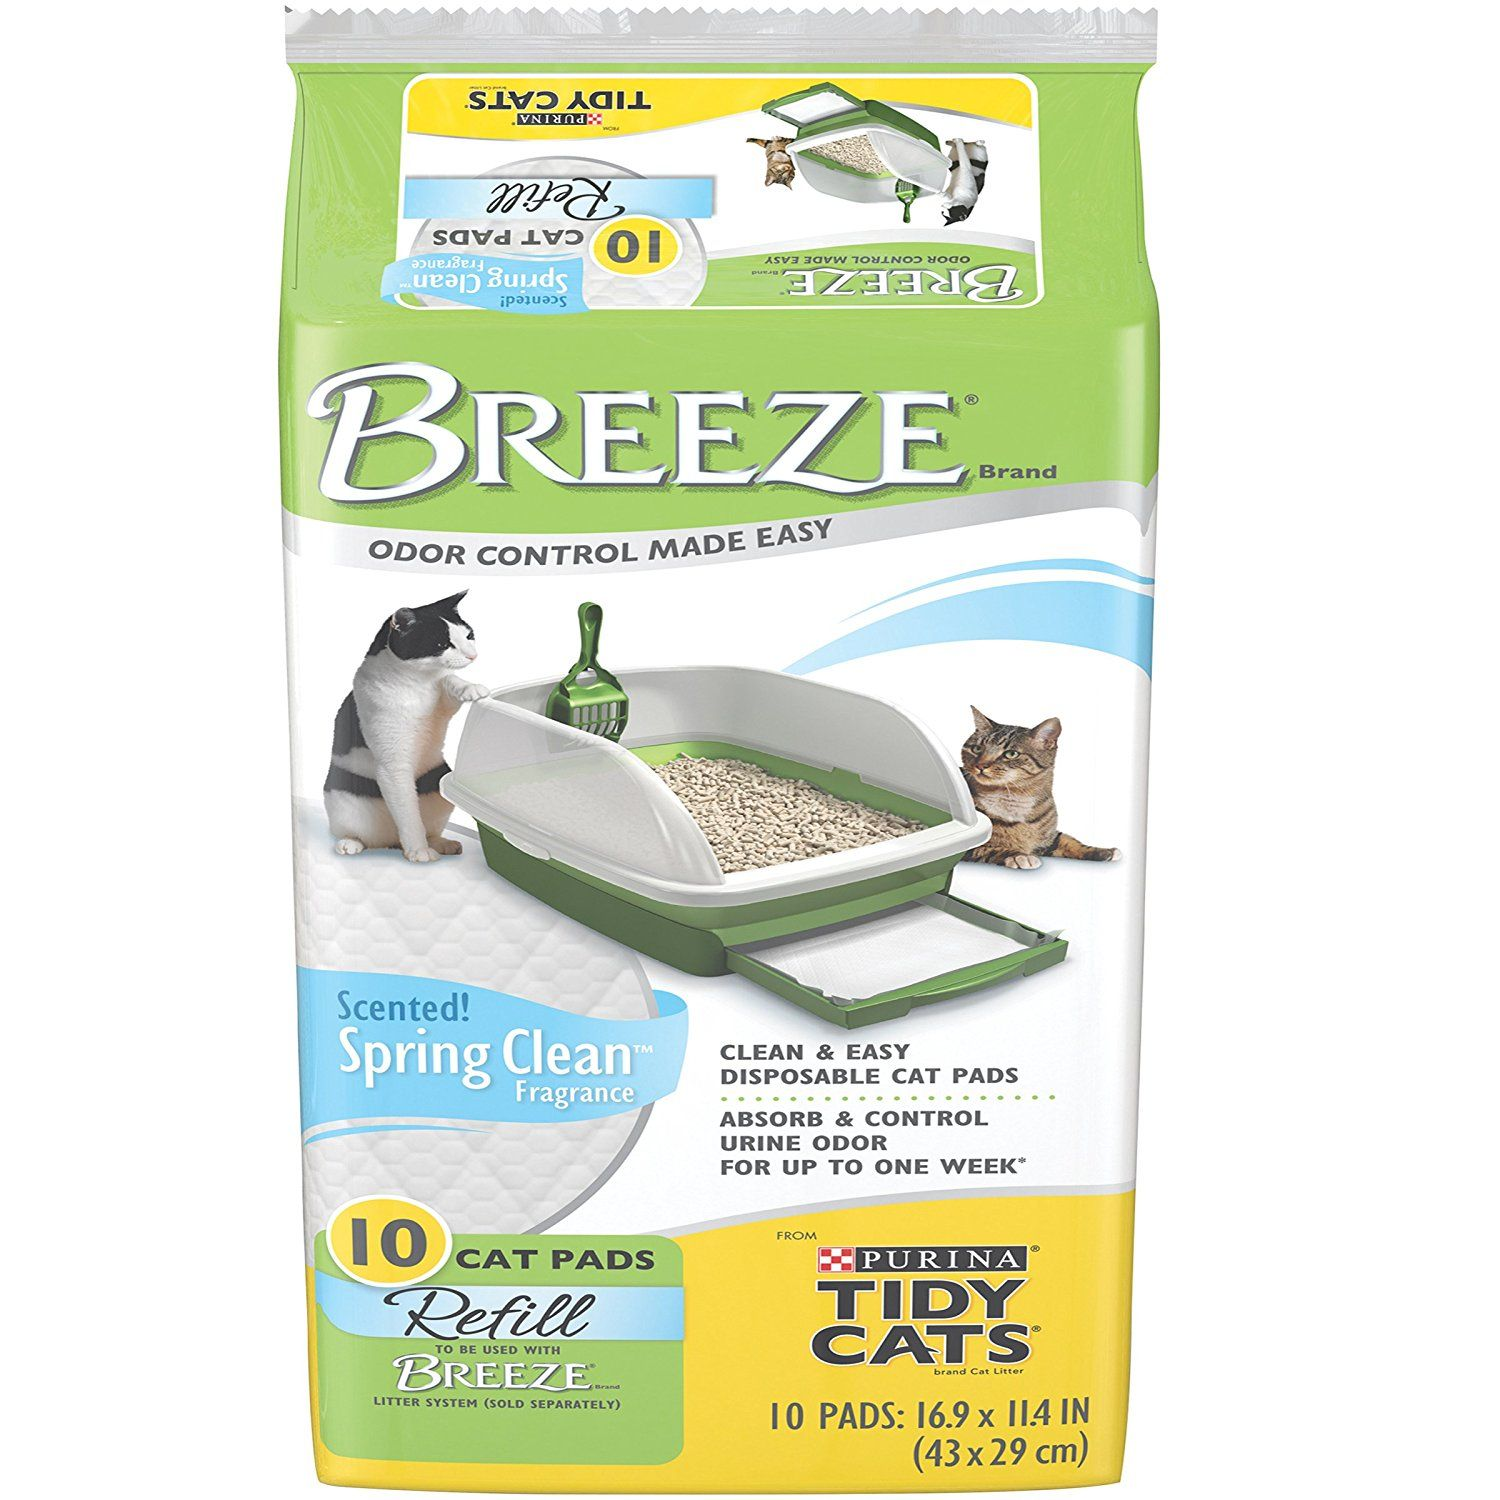 Purina Tidy Cats Litter Breeze System Review Dust Free